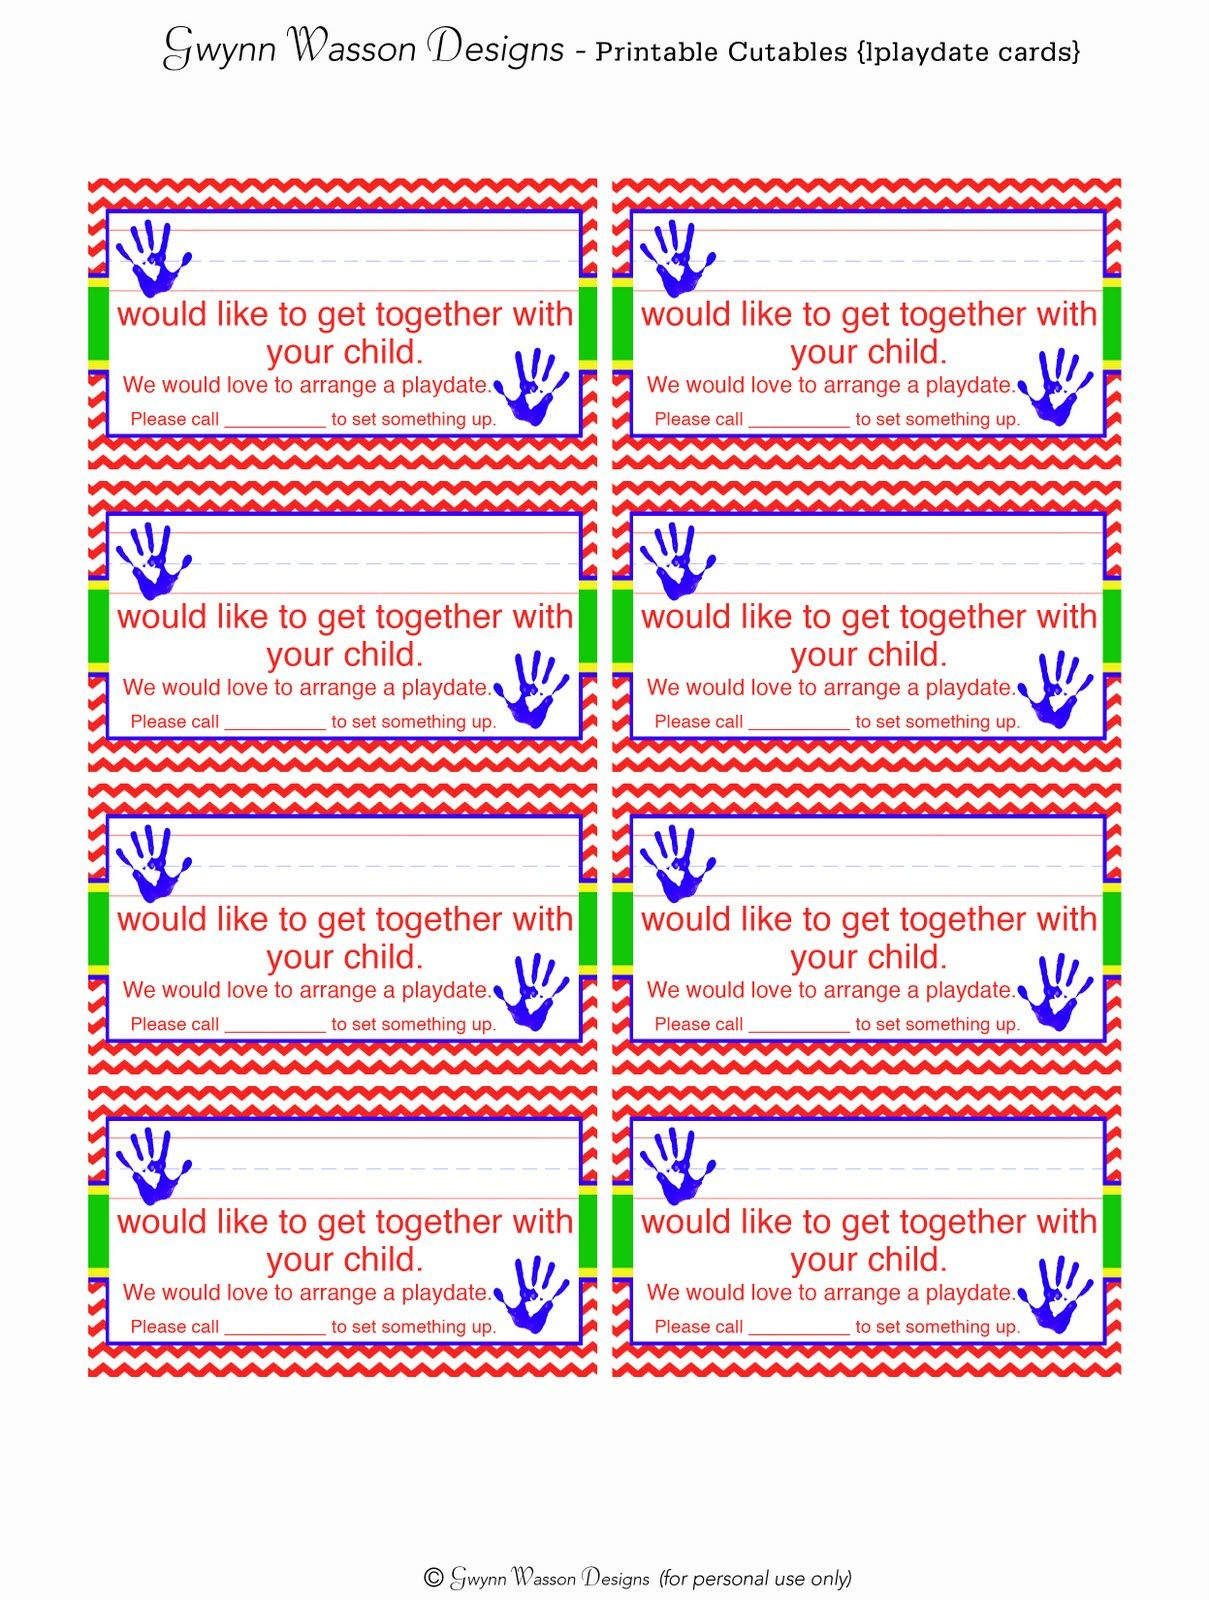 Free Printable Play Date Request Cards & Other Cute Printables - Free Printable Play Date Cards